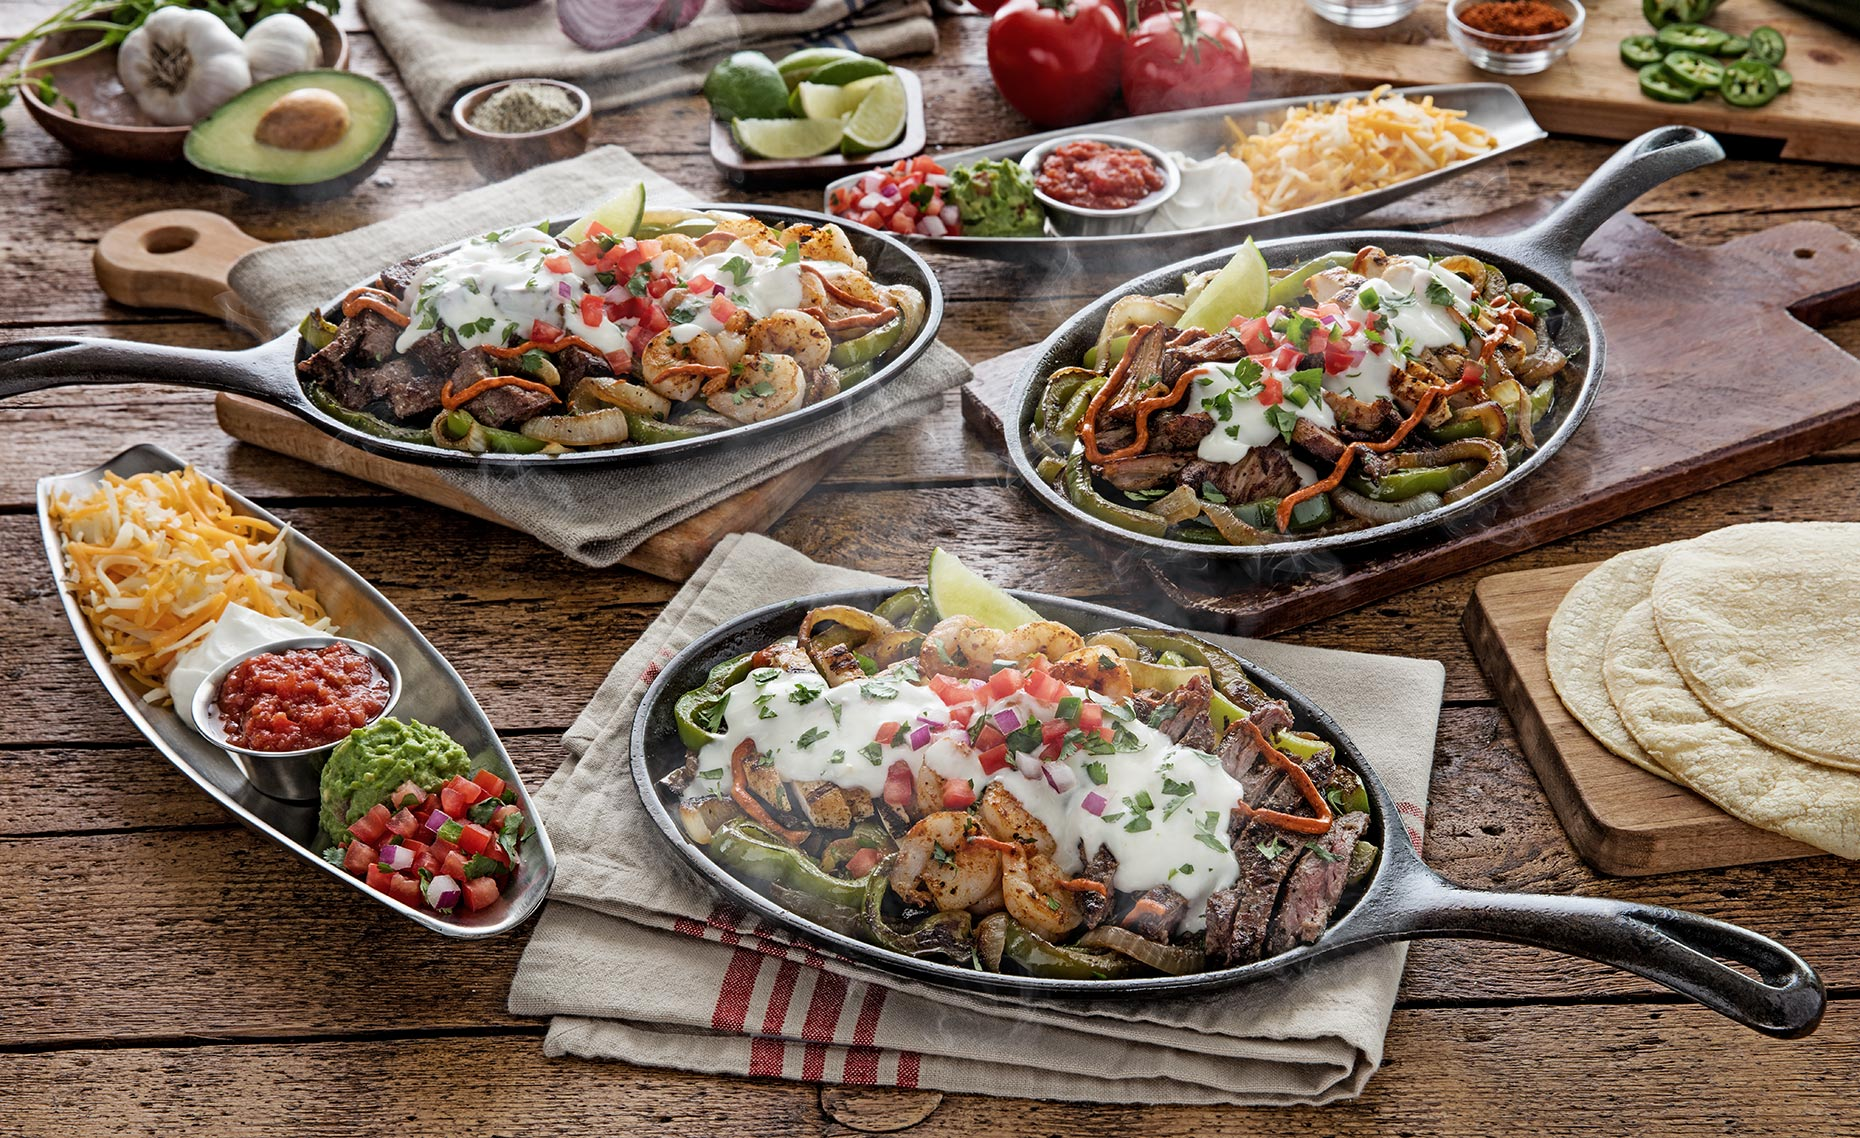 Loaded Fajita Trio Dallas Food Photographer